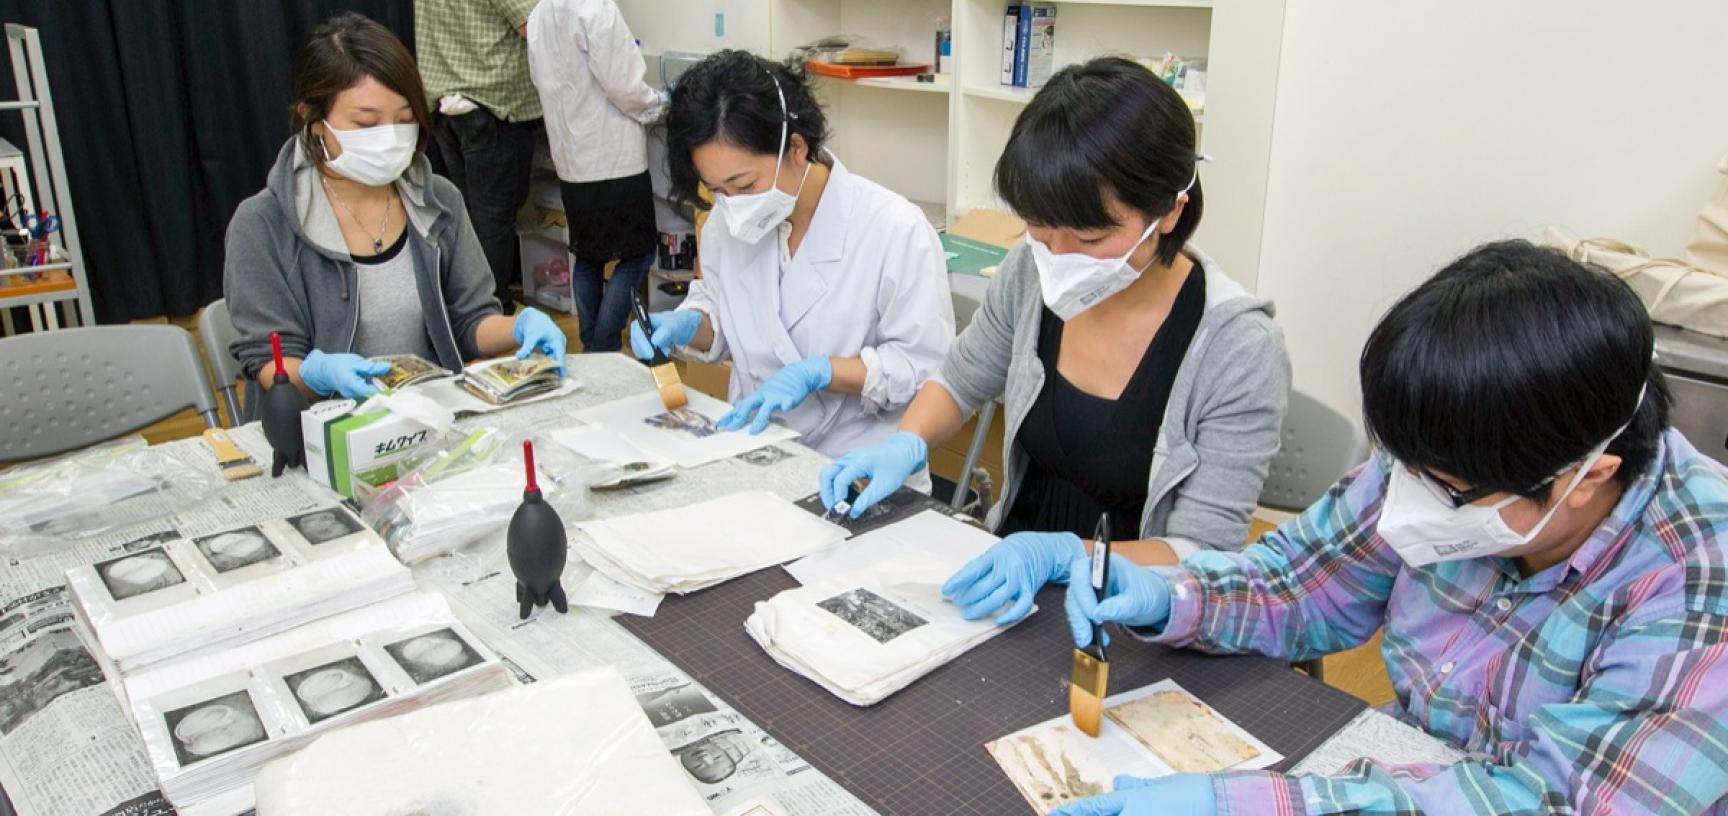 Conservation work being carried out by volunteers. (Copyright RD3 Project/Rikuzentakata City Museum)